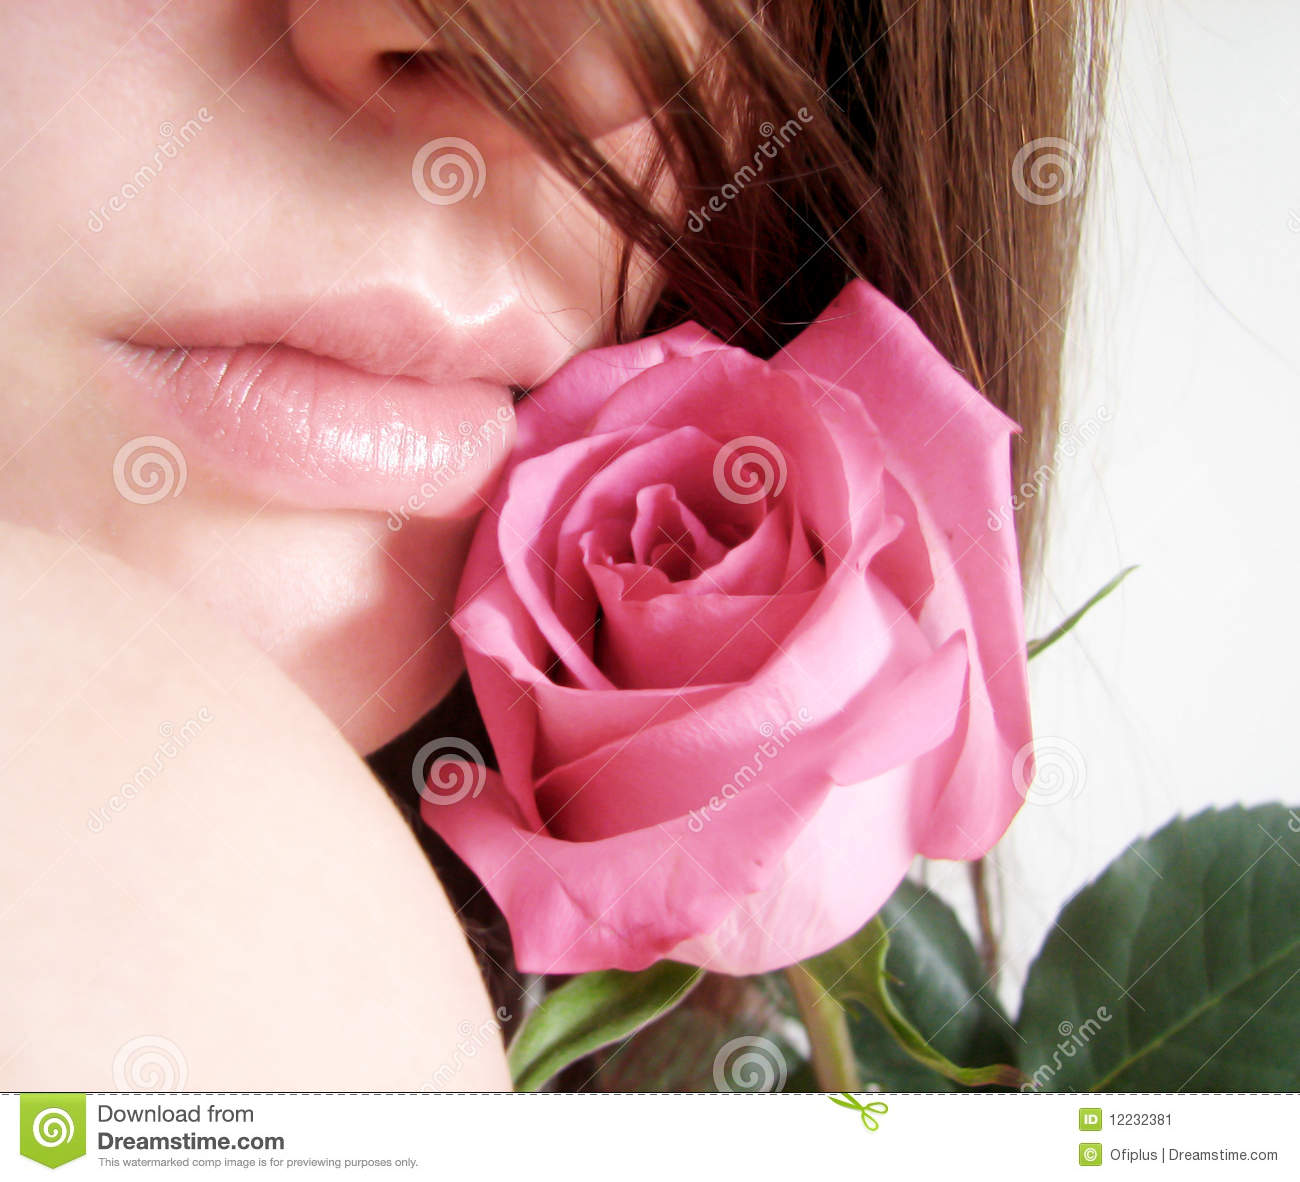 Rose And Sensual Lips Stock Image - Image: 12232381